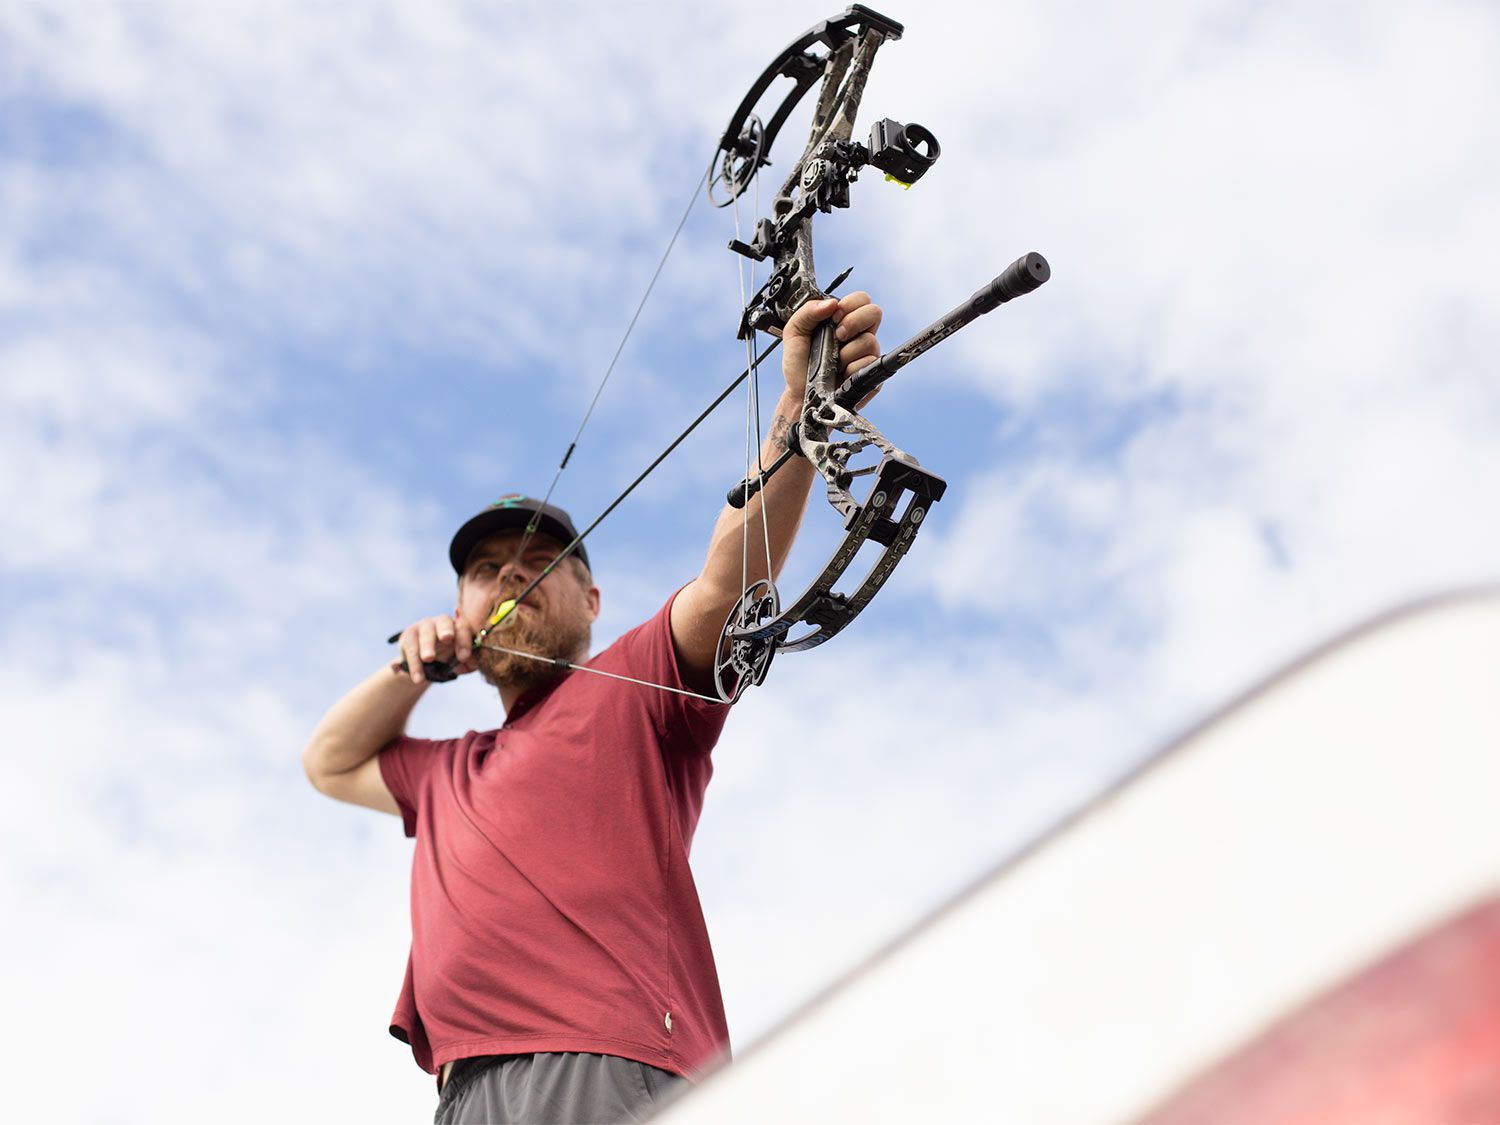 When you're shopping for a bow, it helps to shoot a lot of different brands.